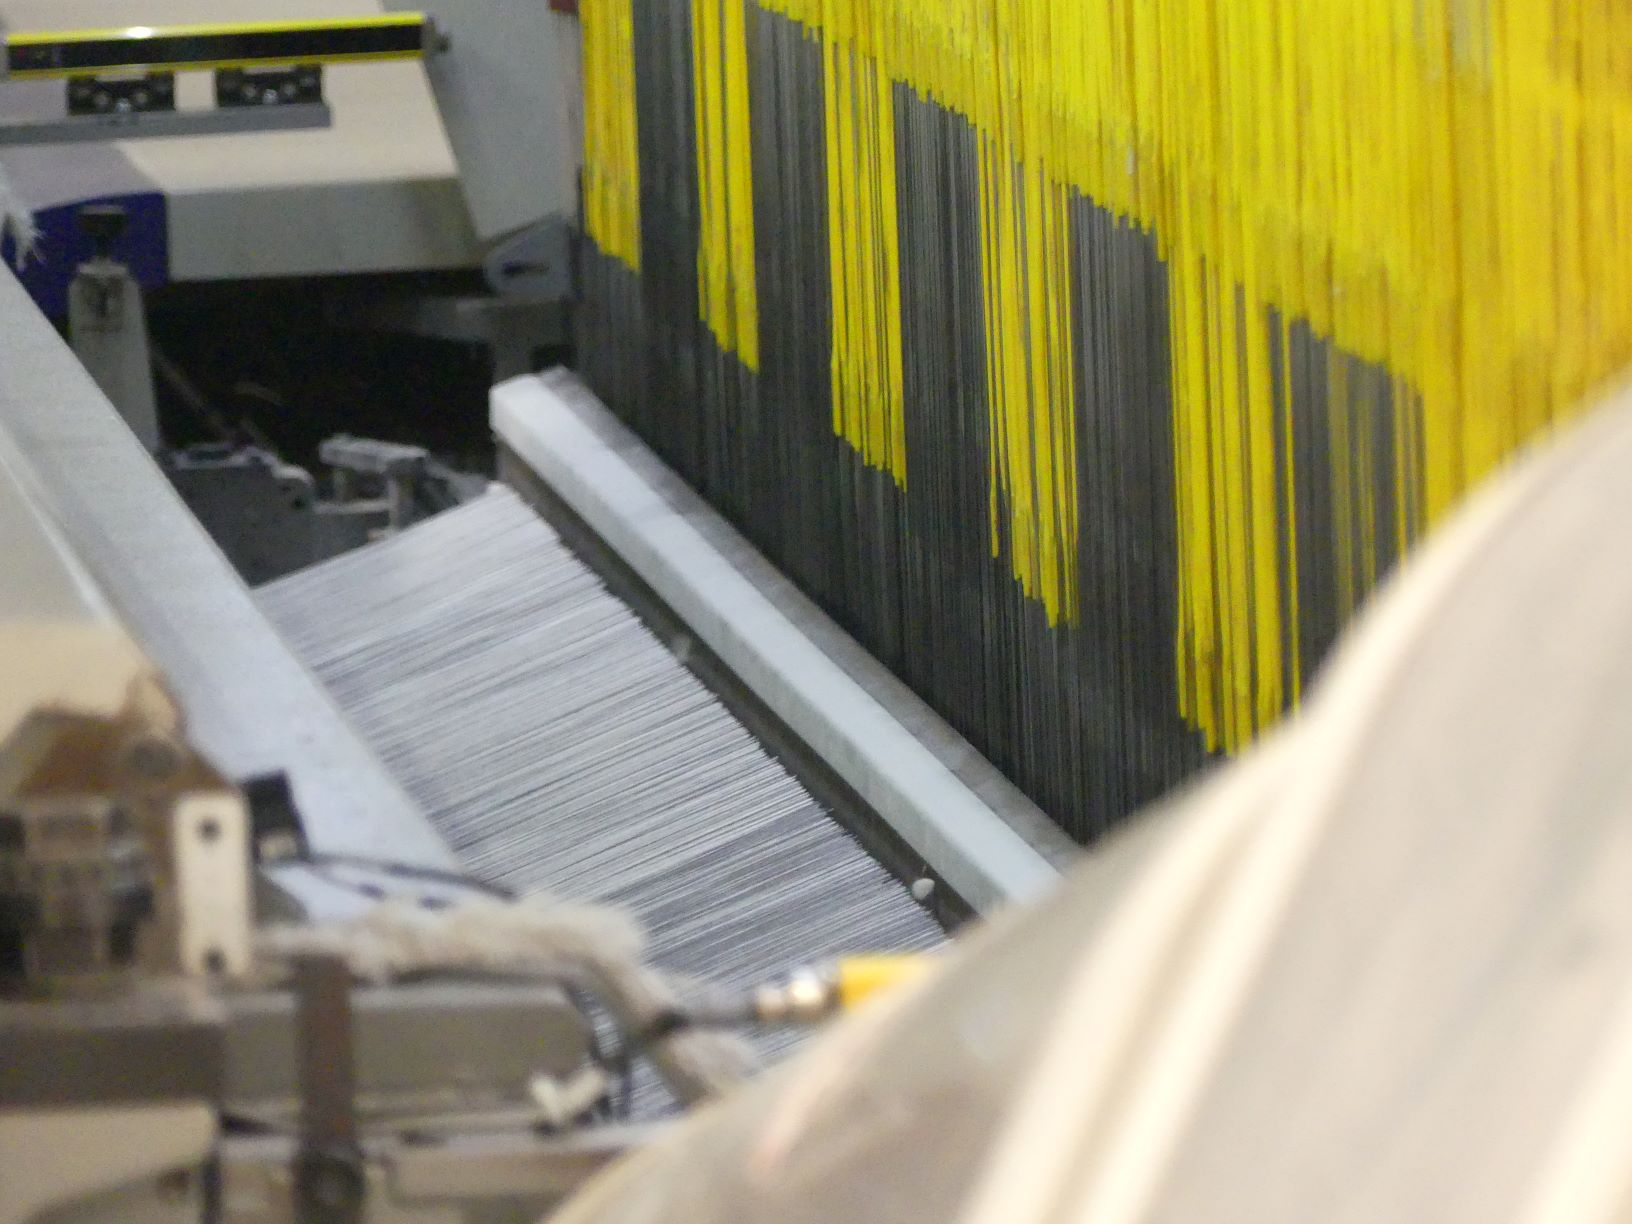 Rug being made on a powerloom